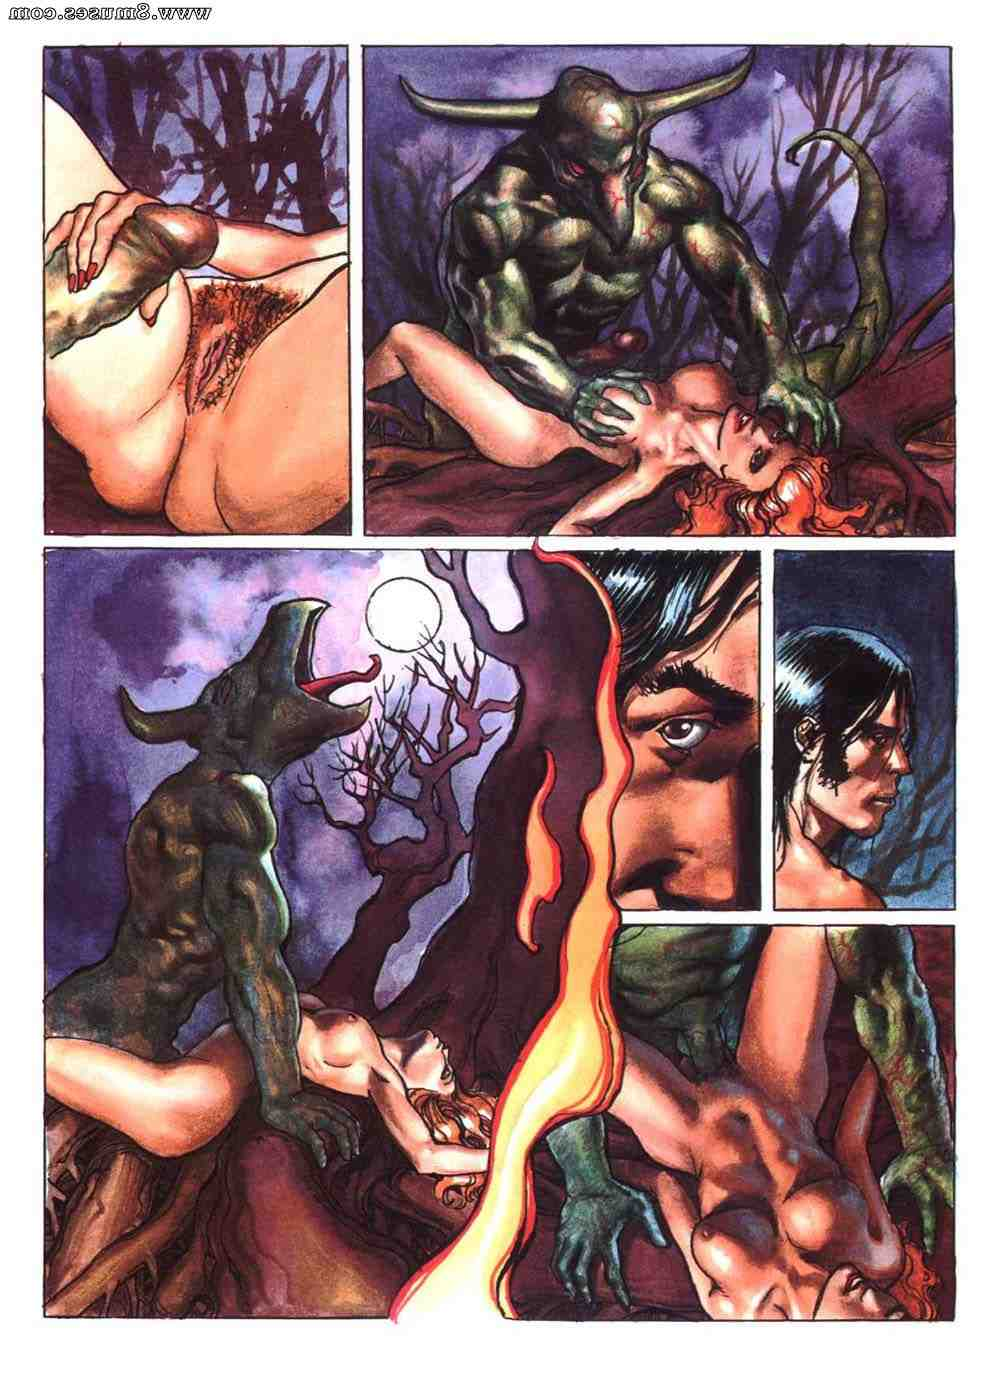 Various-Authors/Starzo/Mike-Mercury Mike_Mercury__8muses_-_Sex_and_Porn_Comics_31.jpg